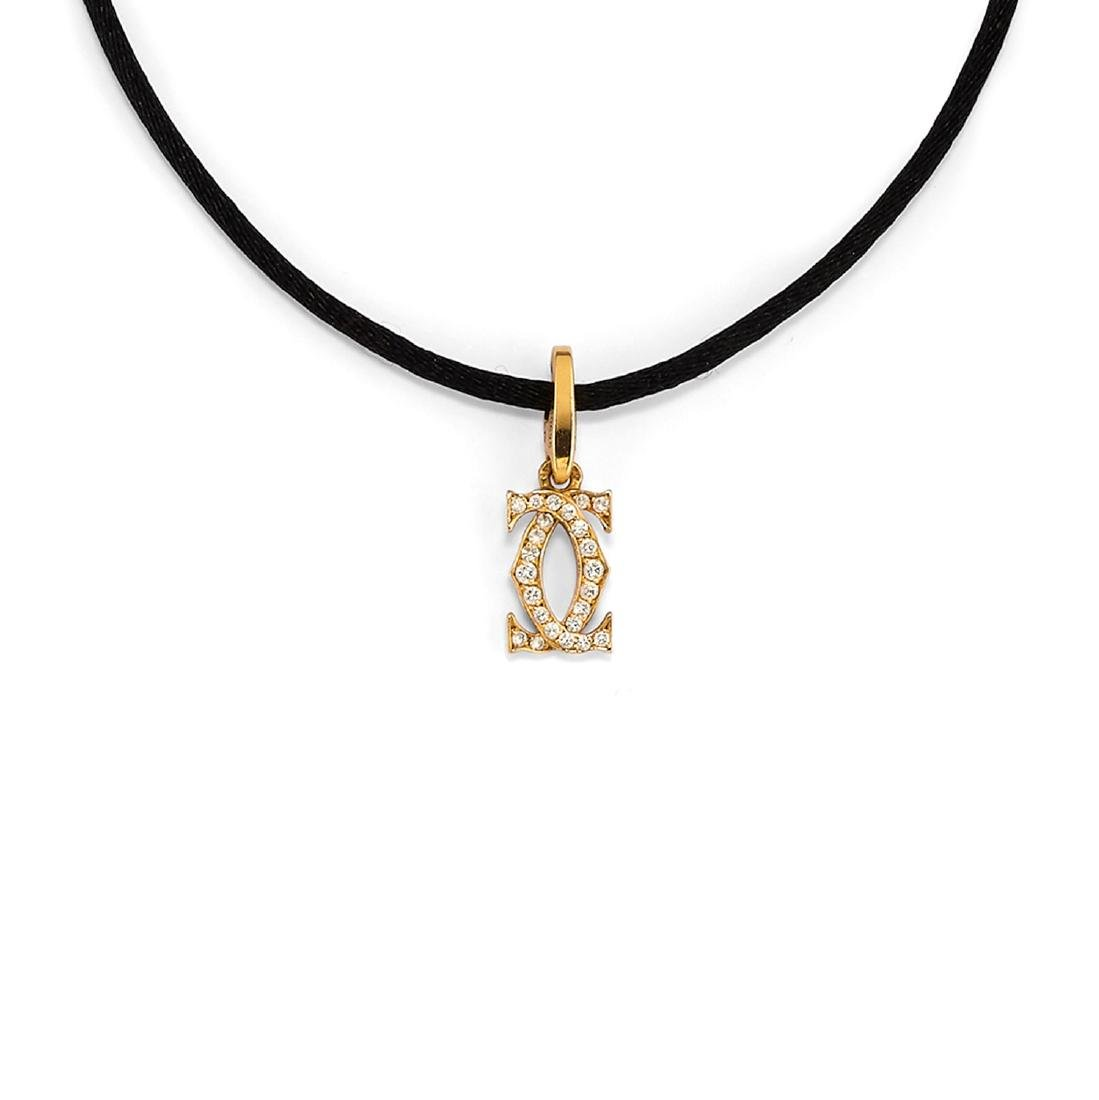 Cartier  - A 18K yellow gold and diamond pendant,